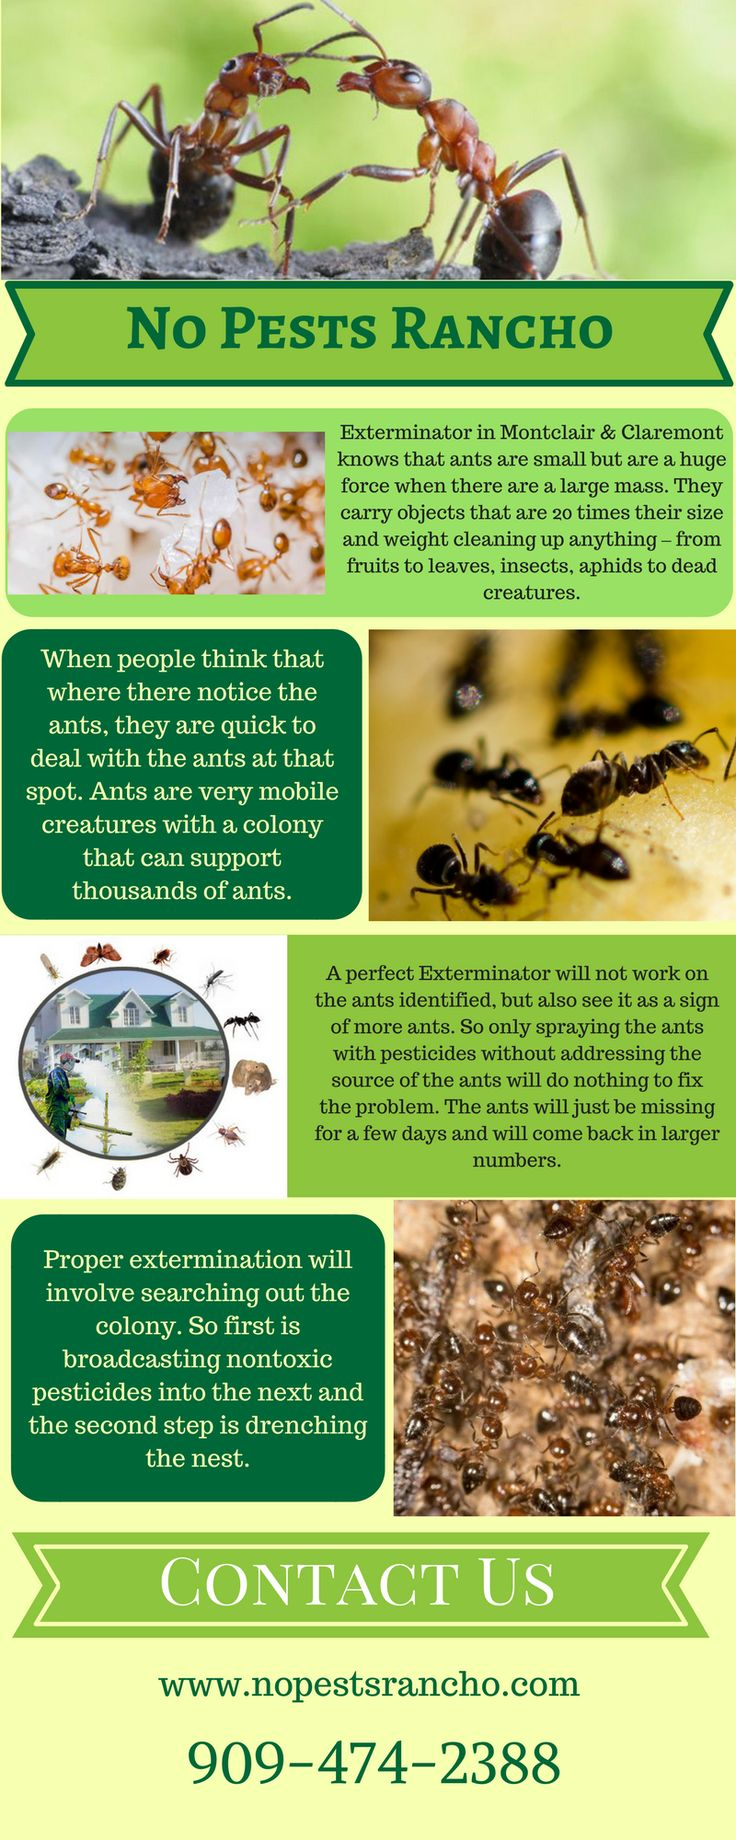 Are you in trouble because of ants in Montclair & Fontana? Then, No pests Rancho will provide you a reliable service such as ant exterminator, rat exterminator, termite pest control, spider pest control & many more at an affordable cost. They have a unique exterminator to provide you a complete solution. For more details you can contact - http://nopestsrancho.com/